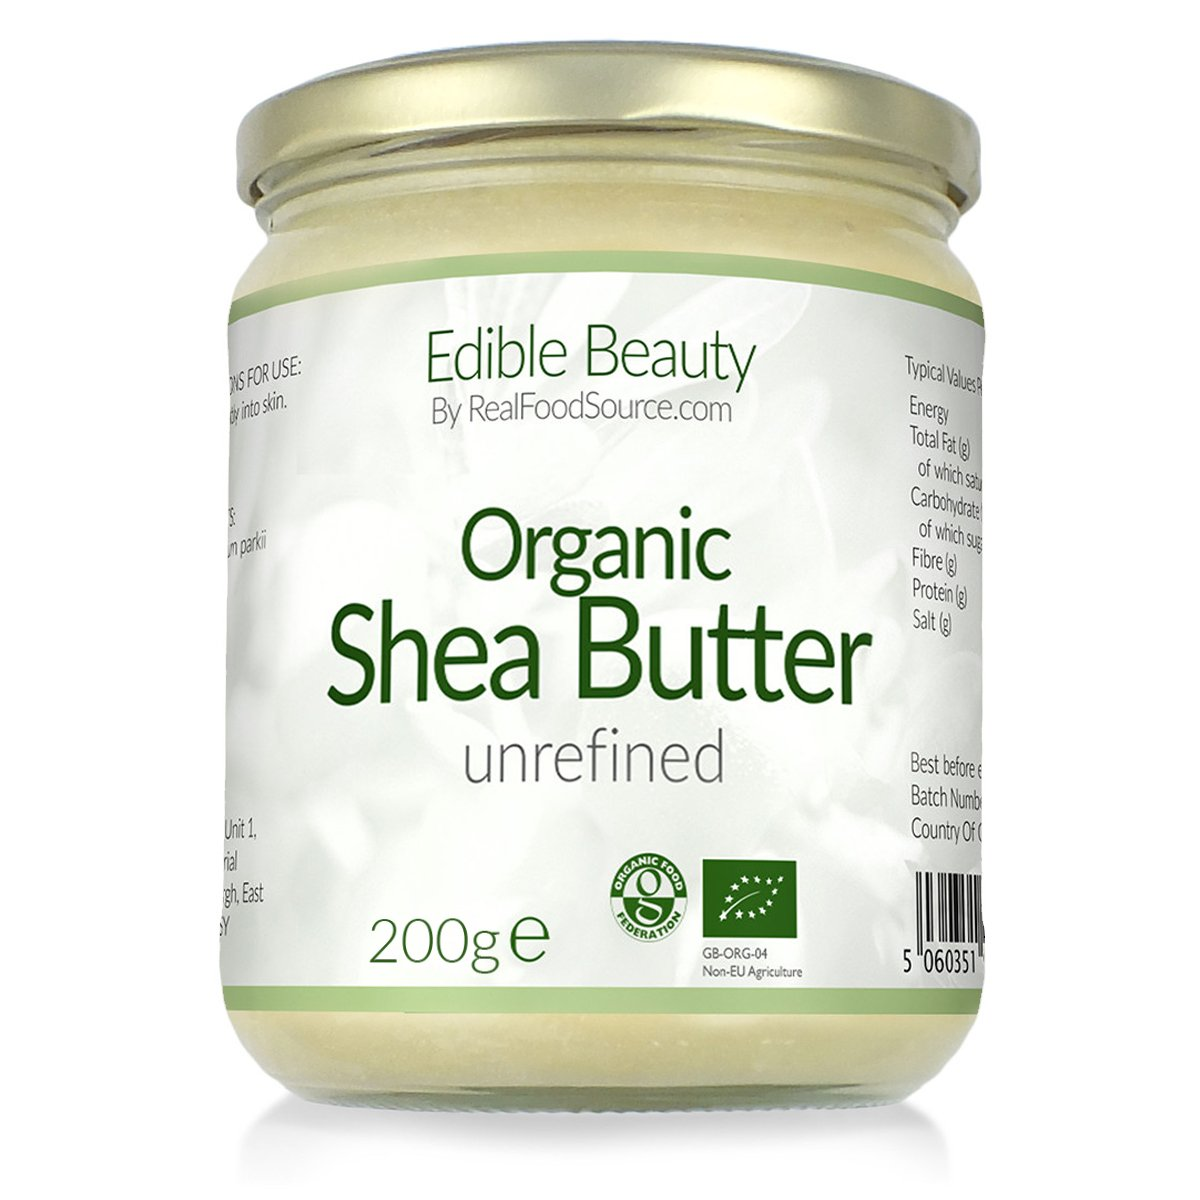 RealFoodSource Certified Organic Unredfined Edible Shea Butter 200g / 225ml